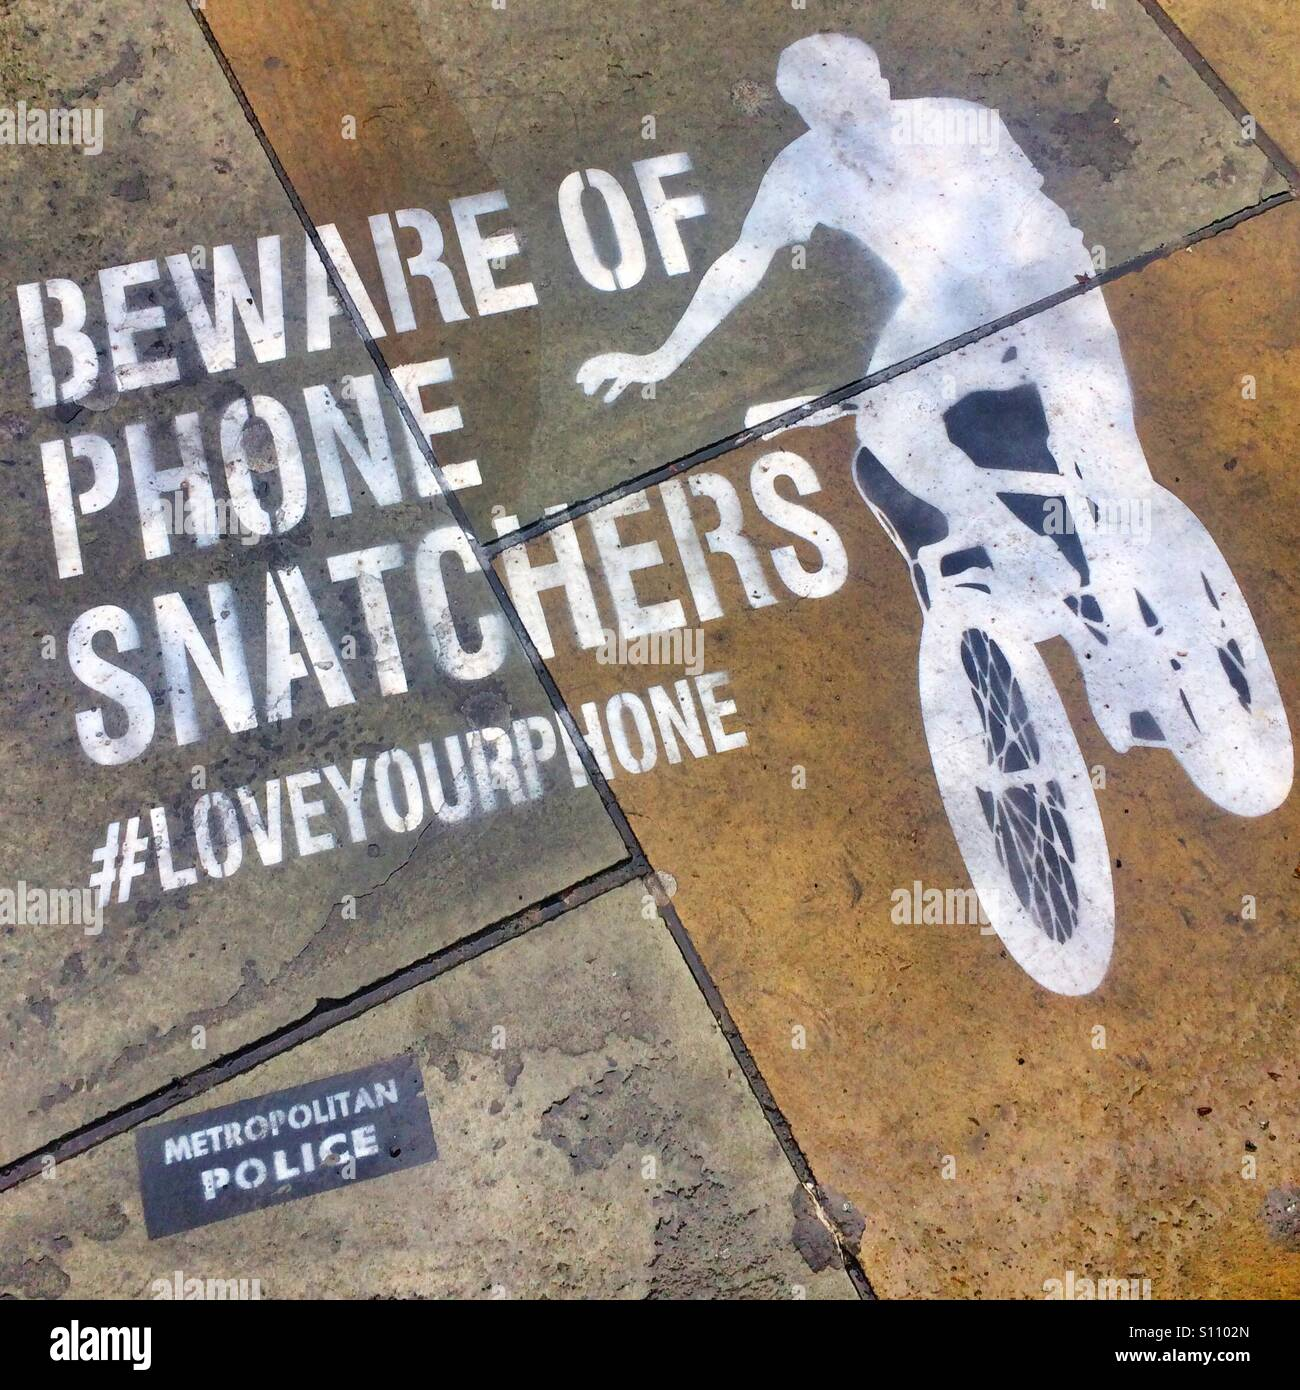 Beware of the Phone Snatchers stencil on a street in central London. - Stock Image